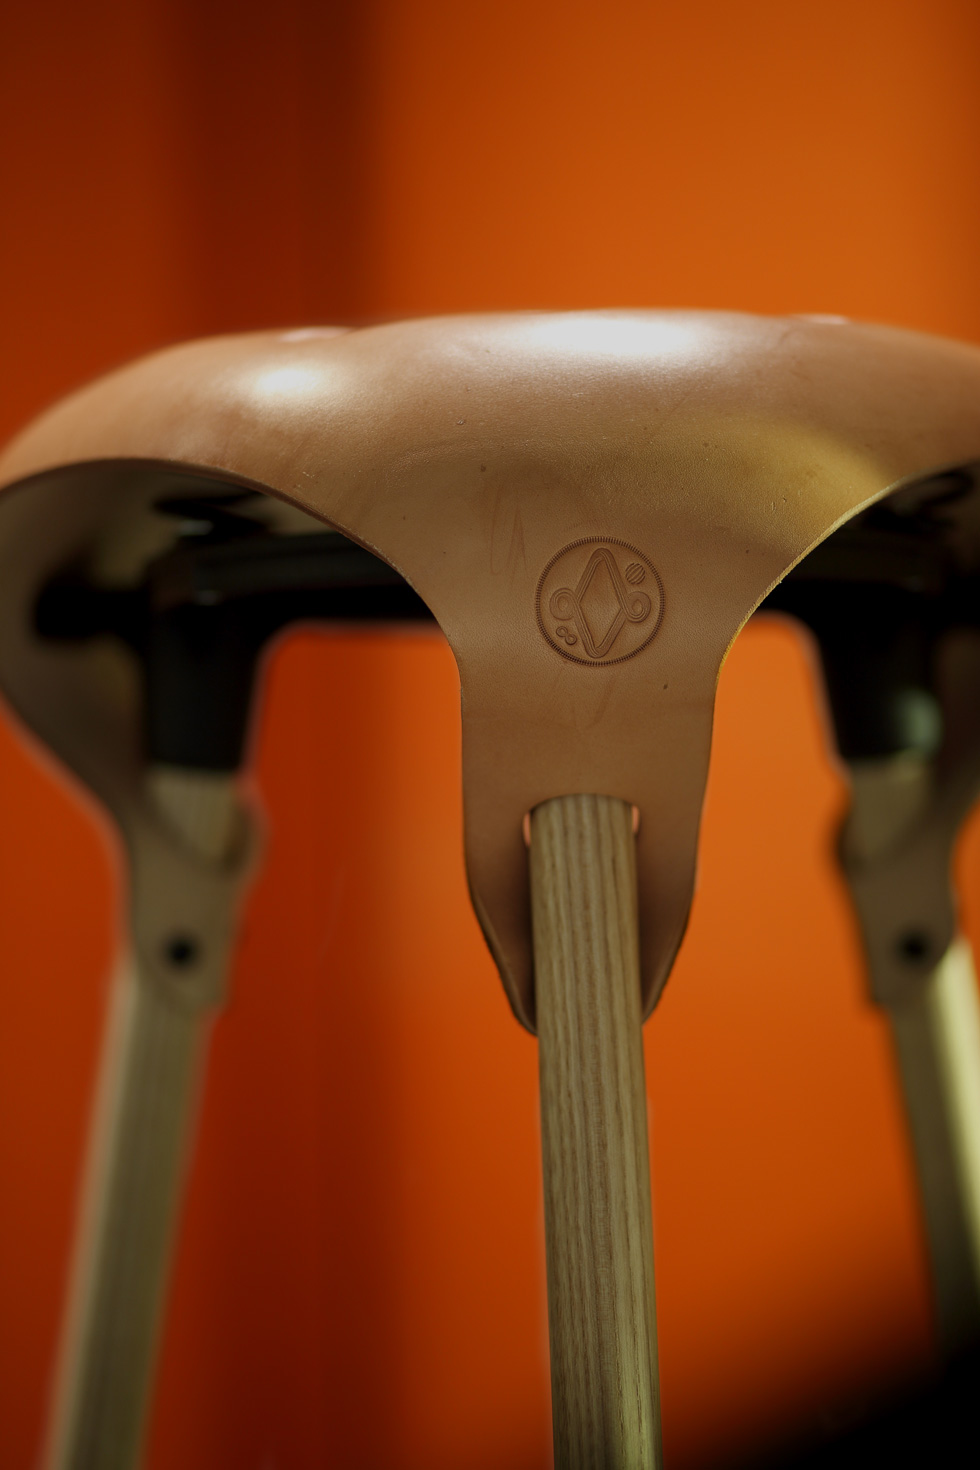 Saddle-Stool-detail-